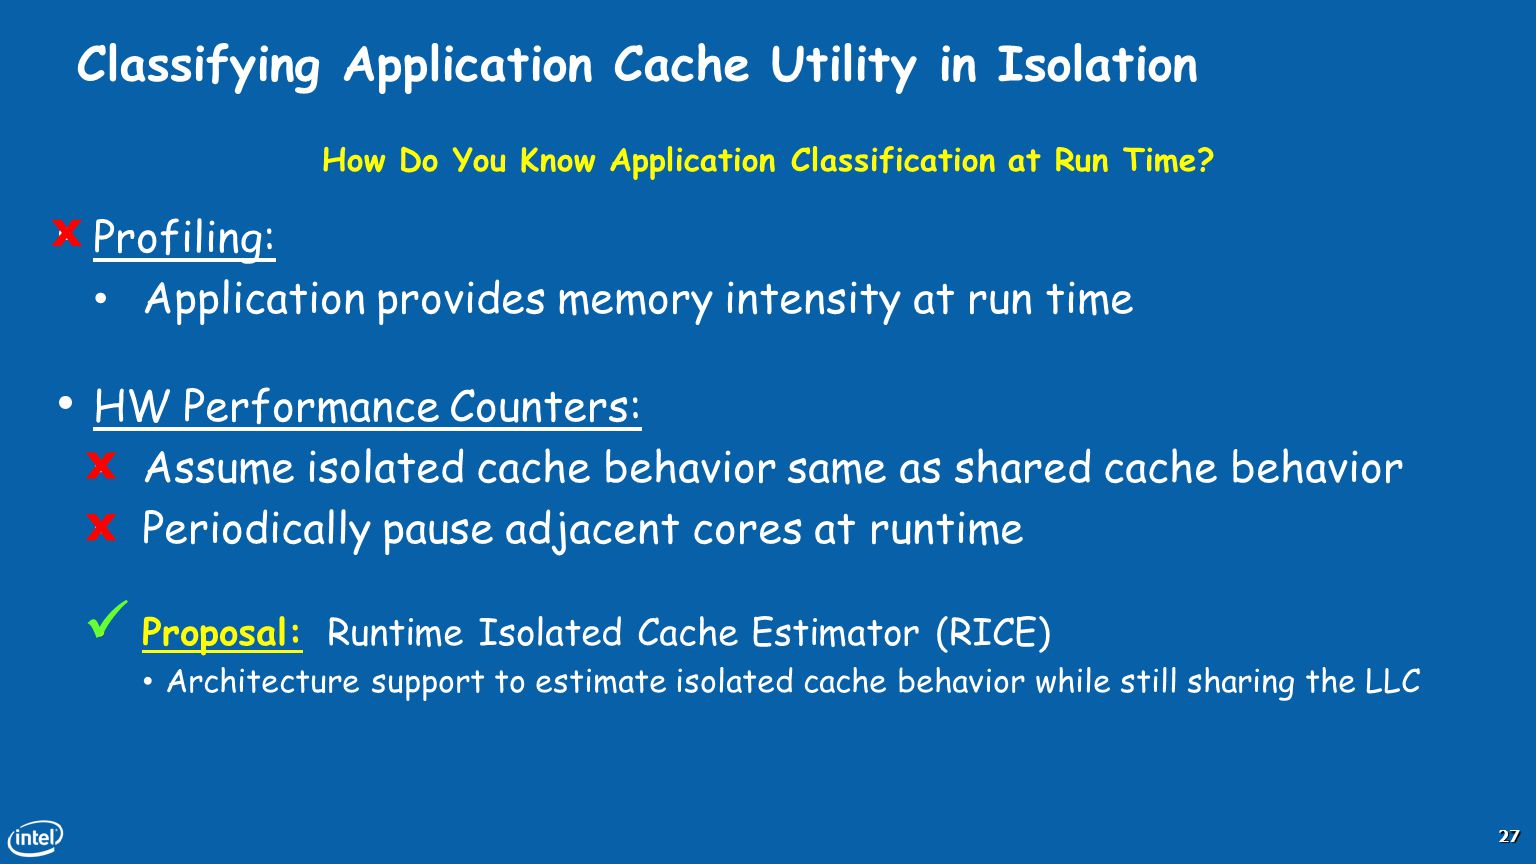 Classifying Application Cache Utility in Isolation